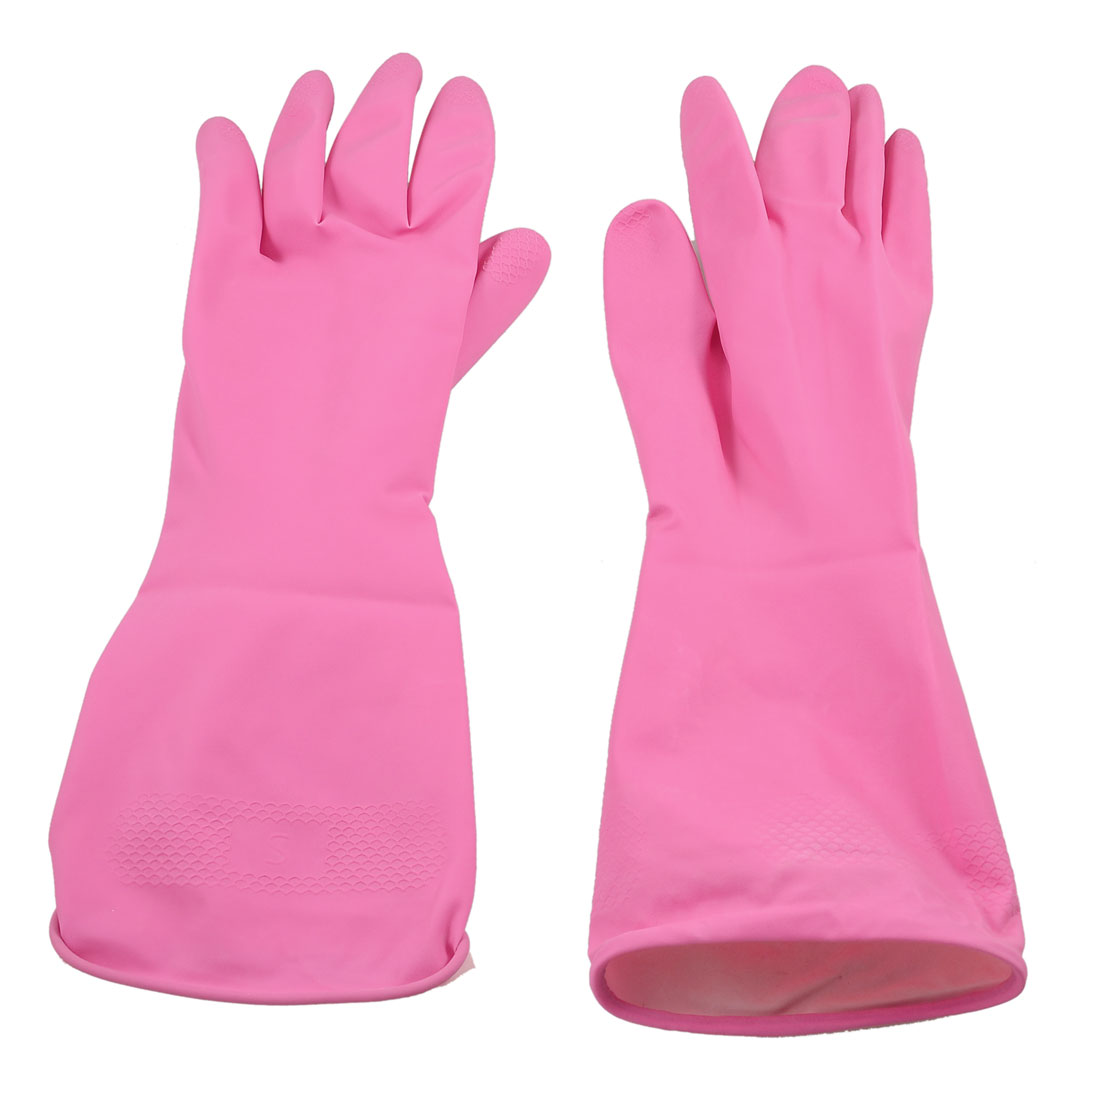 2 Psc Household Antislip Rose Pink Clean Wash Latex Gloves